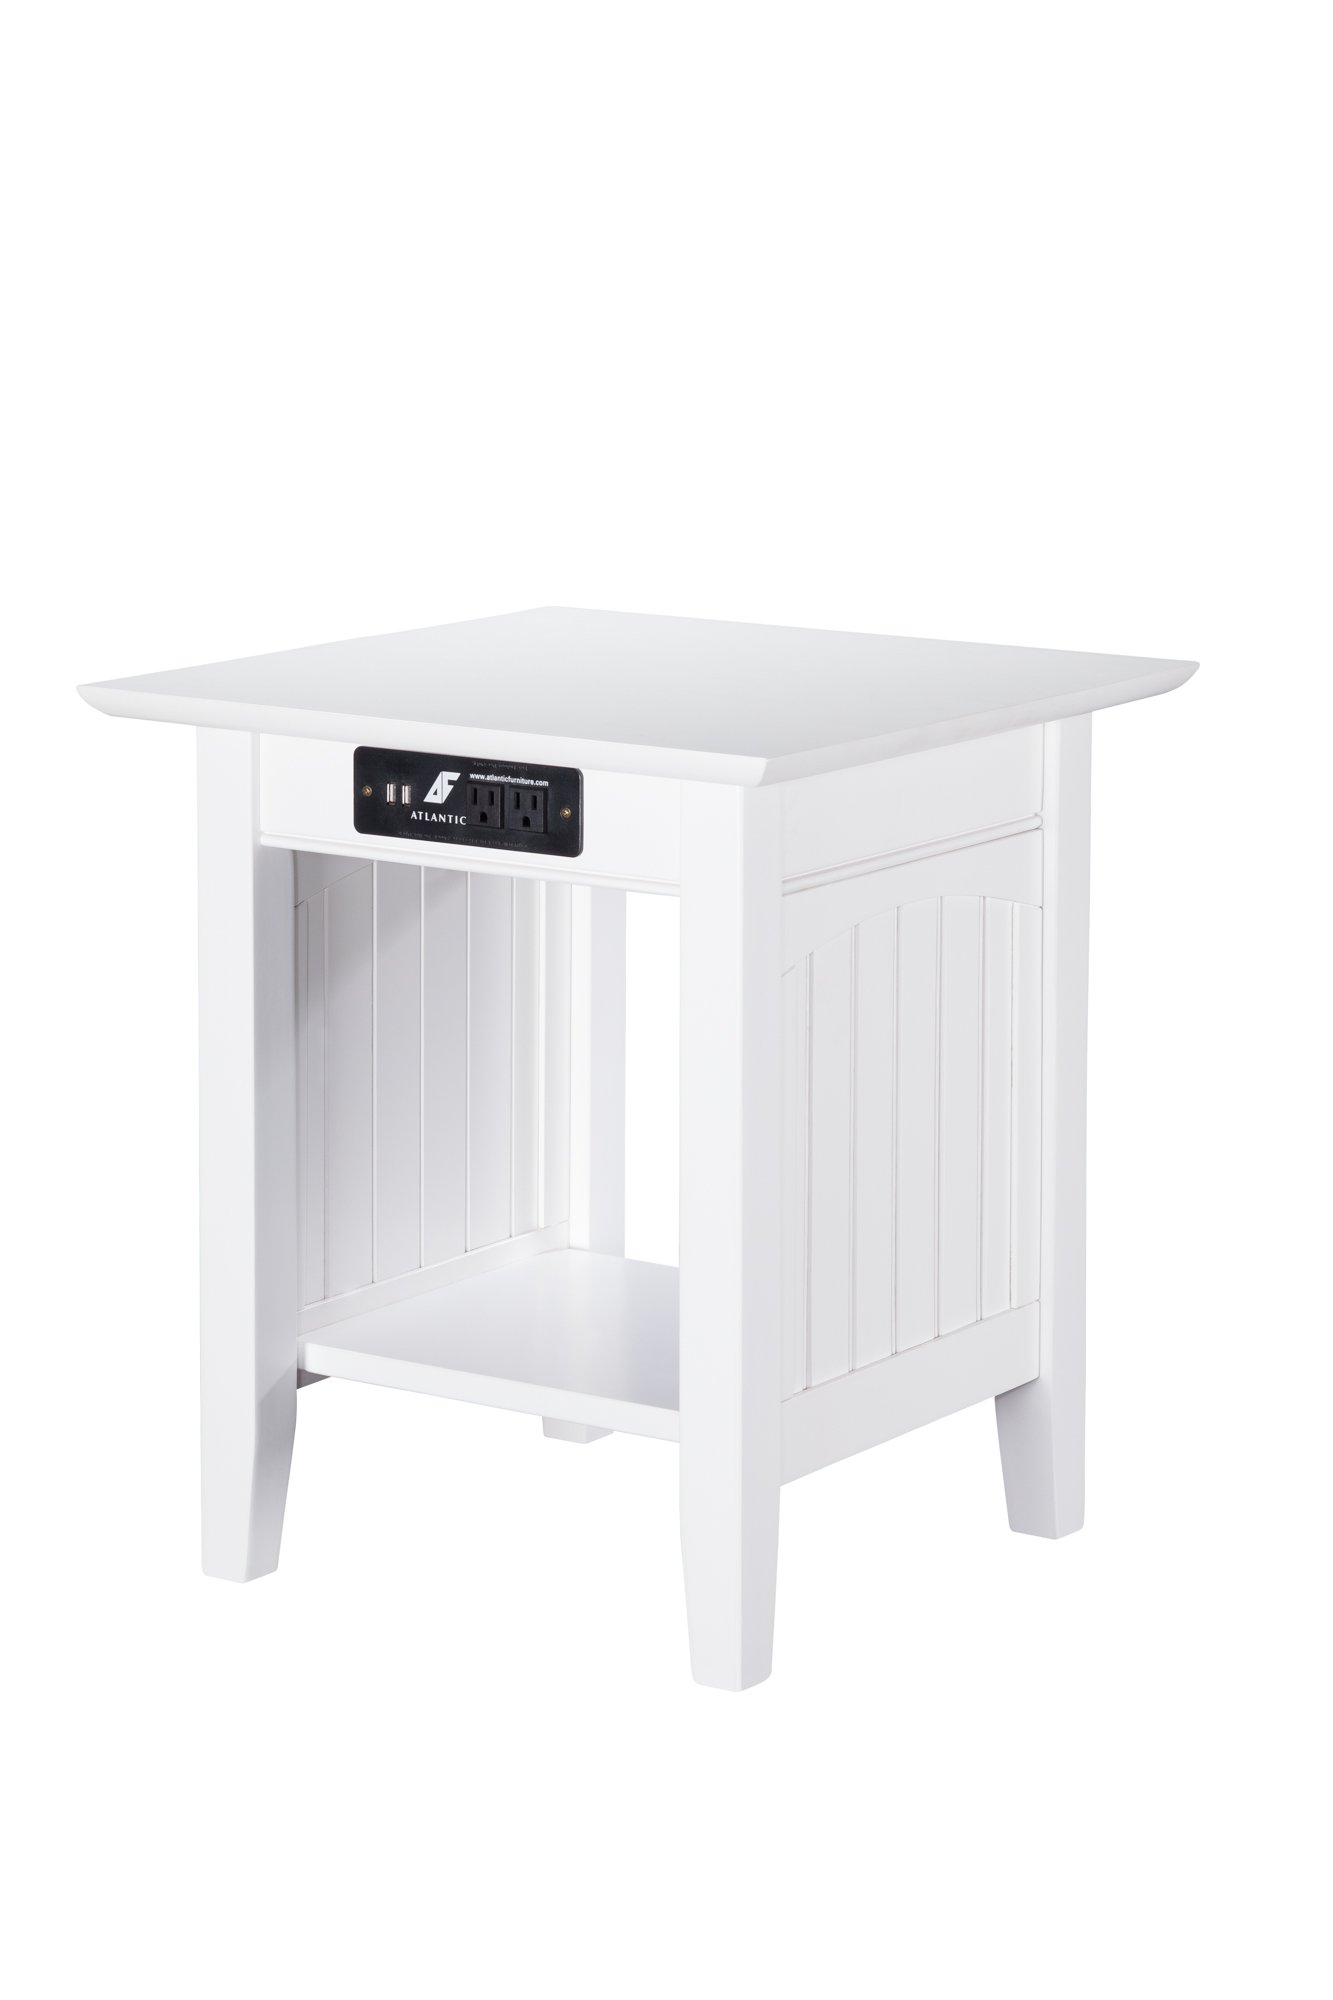 Nantucket End Table with USB Charger, White